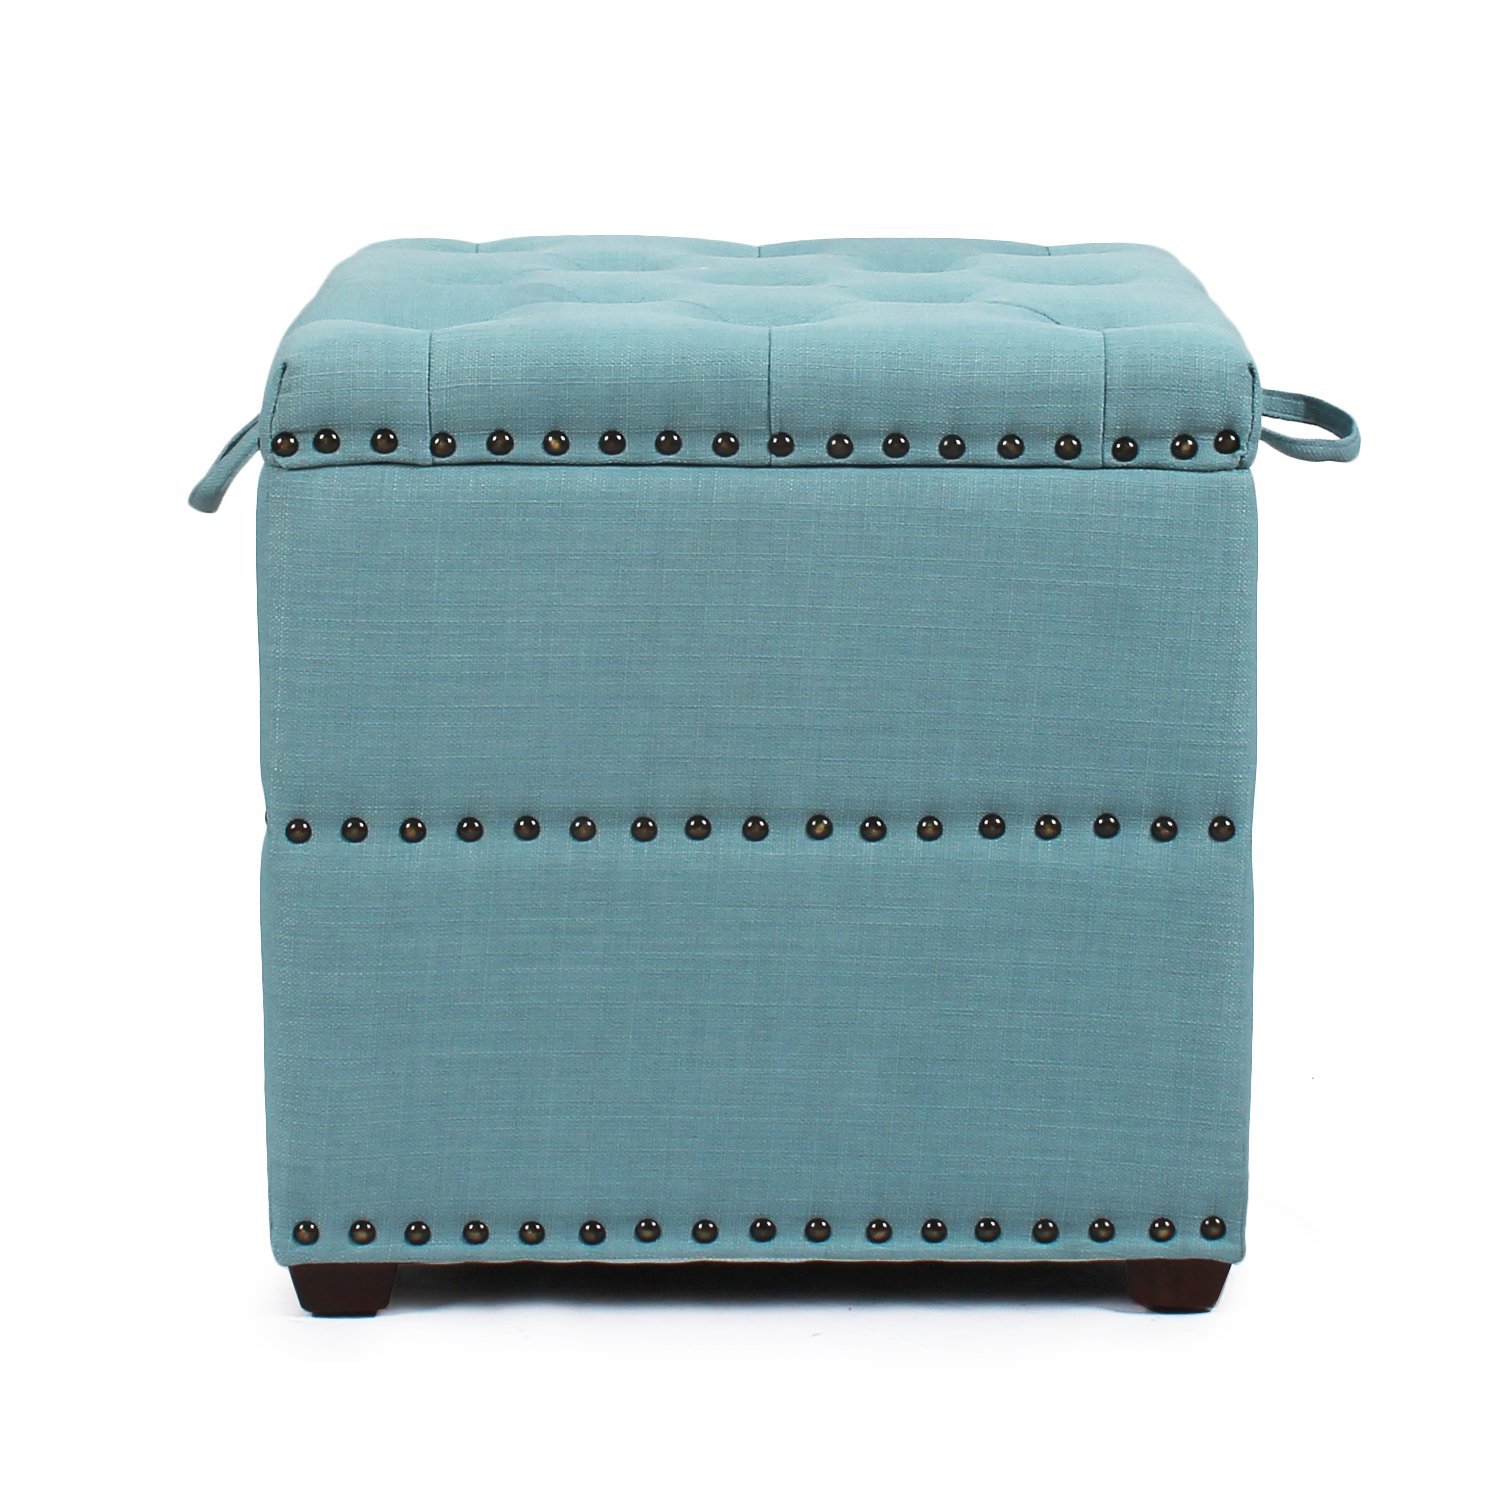 Decent Home Storage Ottoman Stool Fabric & Wood 18.5x18.5x19 Inches Blue by Decent Home